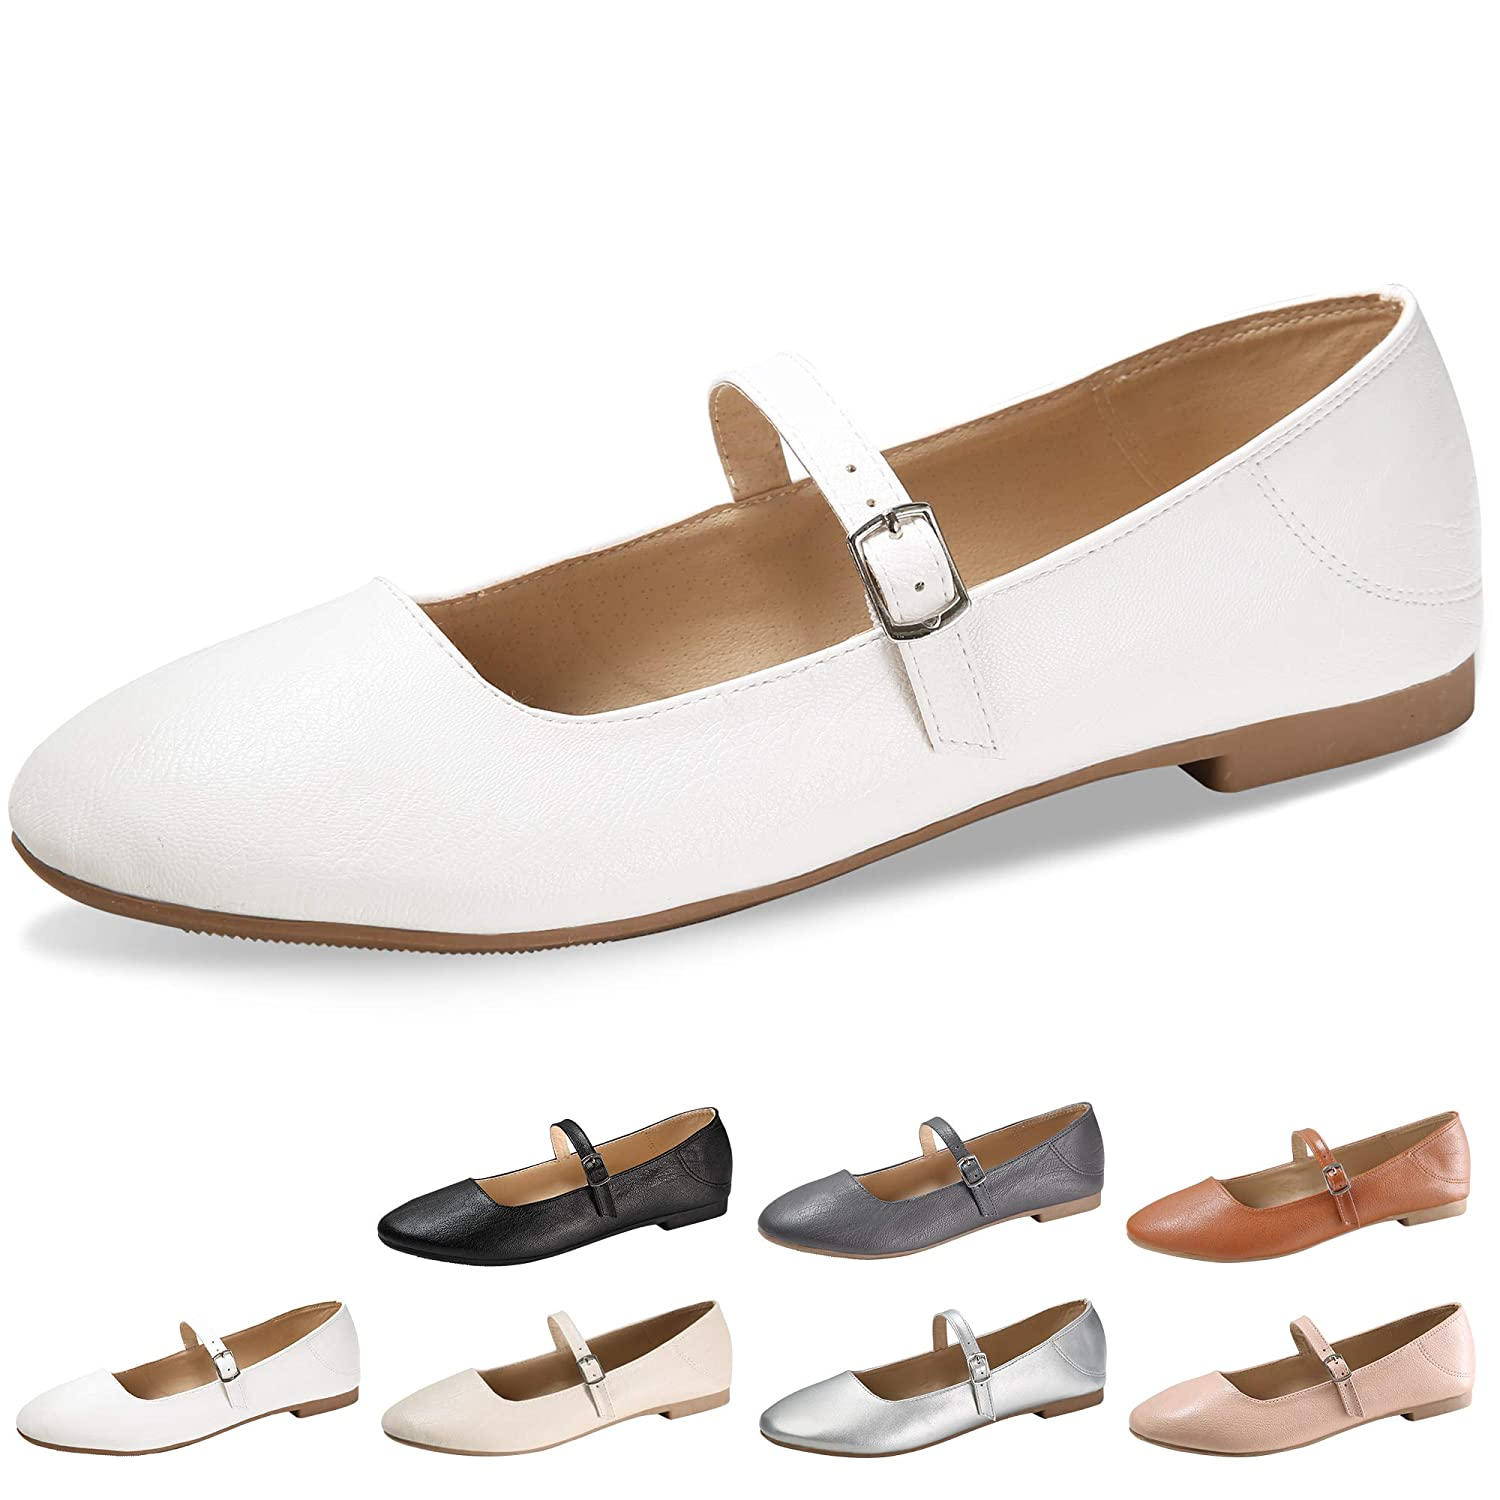 1920s Tennis Clothes | Womens and Men's Outfits CINAK Flats Mary Jane Shoes Womens Casual Comfortable Walking Classic Buckle Ankle Strap Style Ballet Slip On $21.99 AT vintagedancer.com